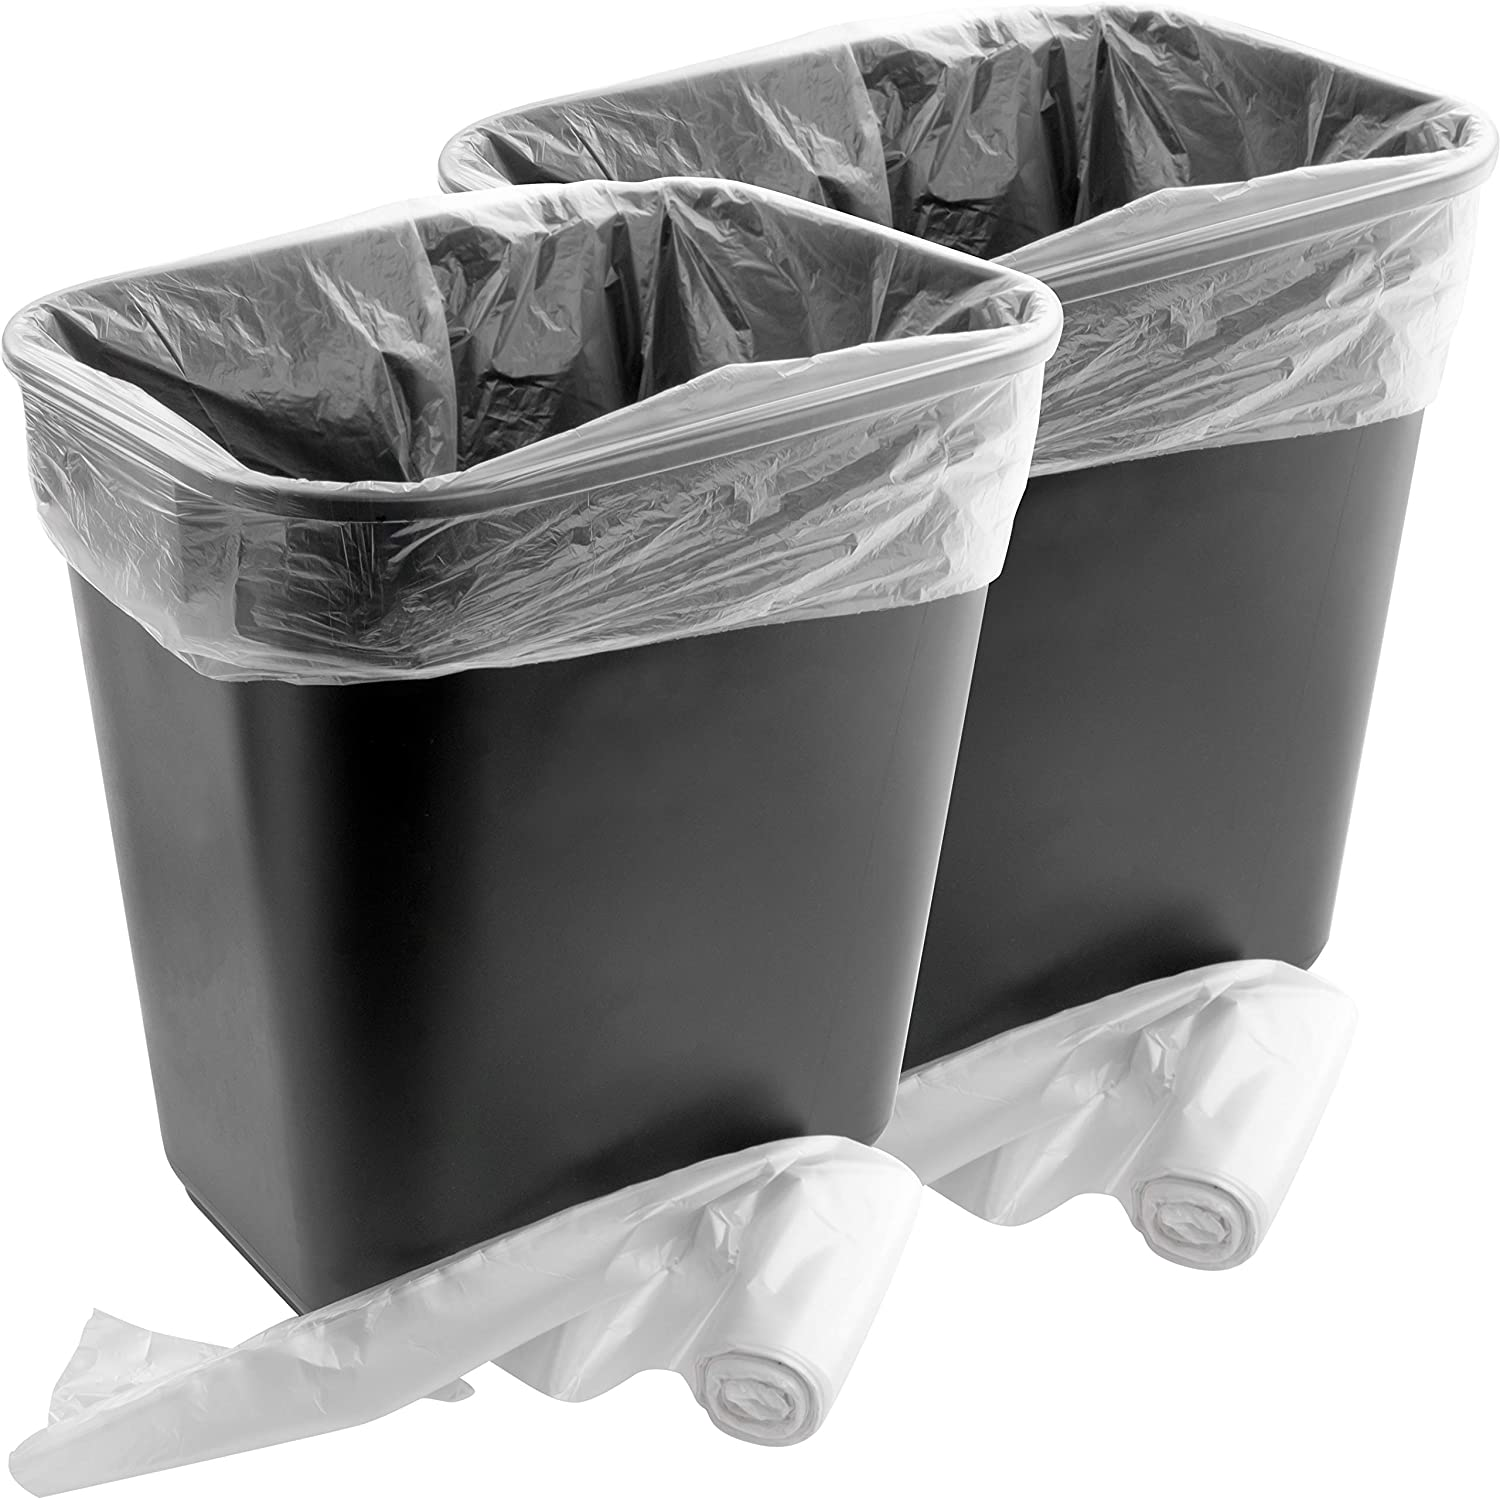 Space-Saving Trash Can and 4 Gal. Leak-Proof Liners Combo 2Pk. Small Black Plastic Wastebasket and Clear Bags Great for Bathroom, Kitchen or Office. Garbage Bin Fits Under Most Desks and Cabinets